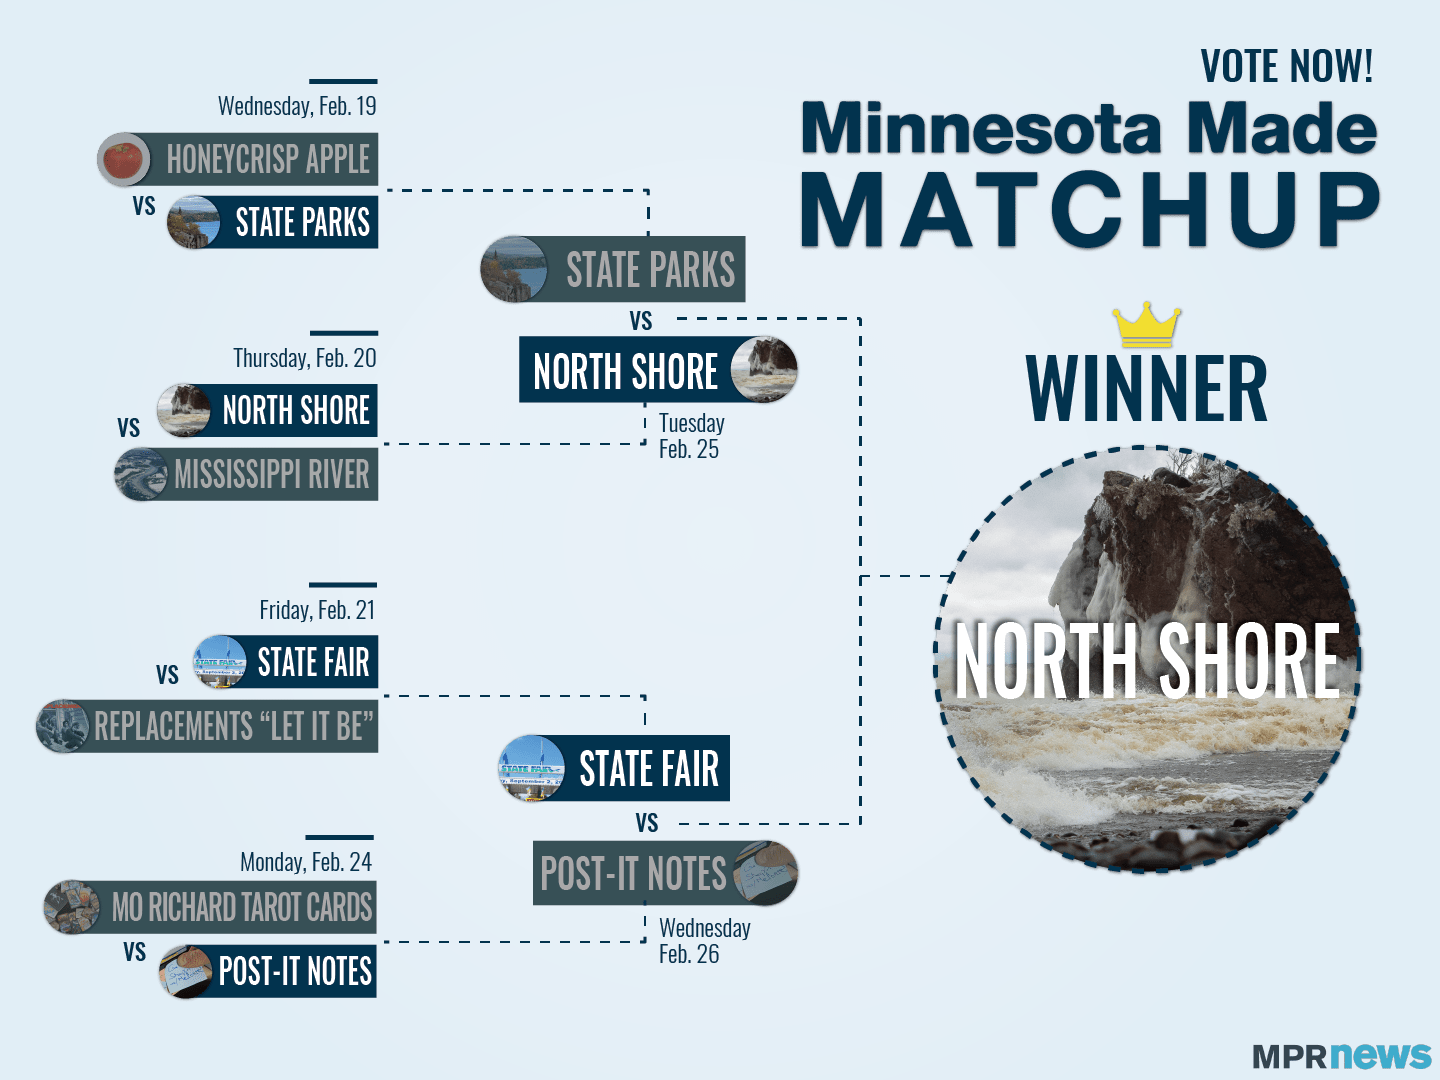 The North Shore is the winner of the Minnesota Made Matchup!